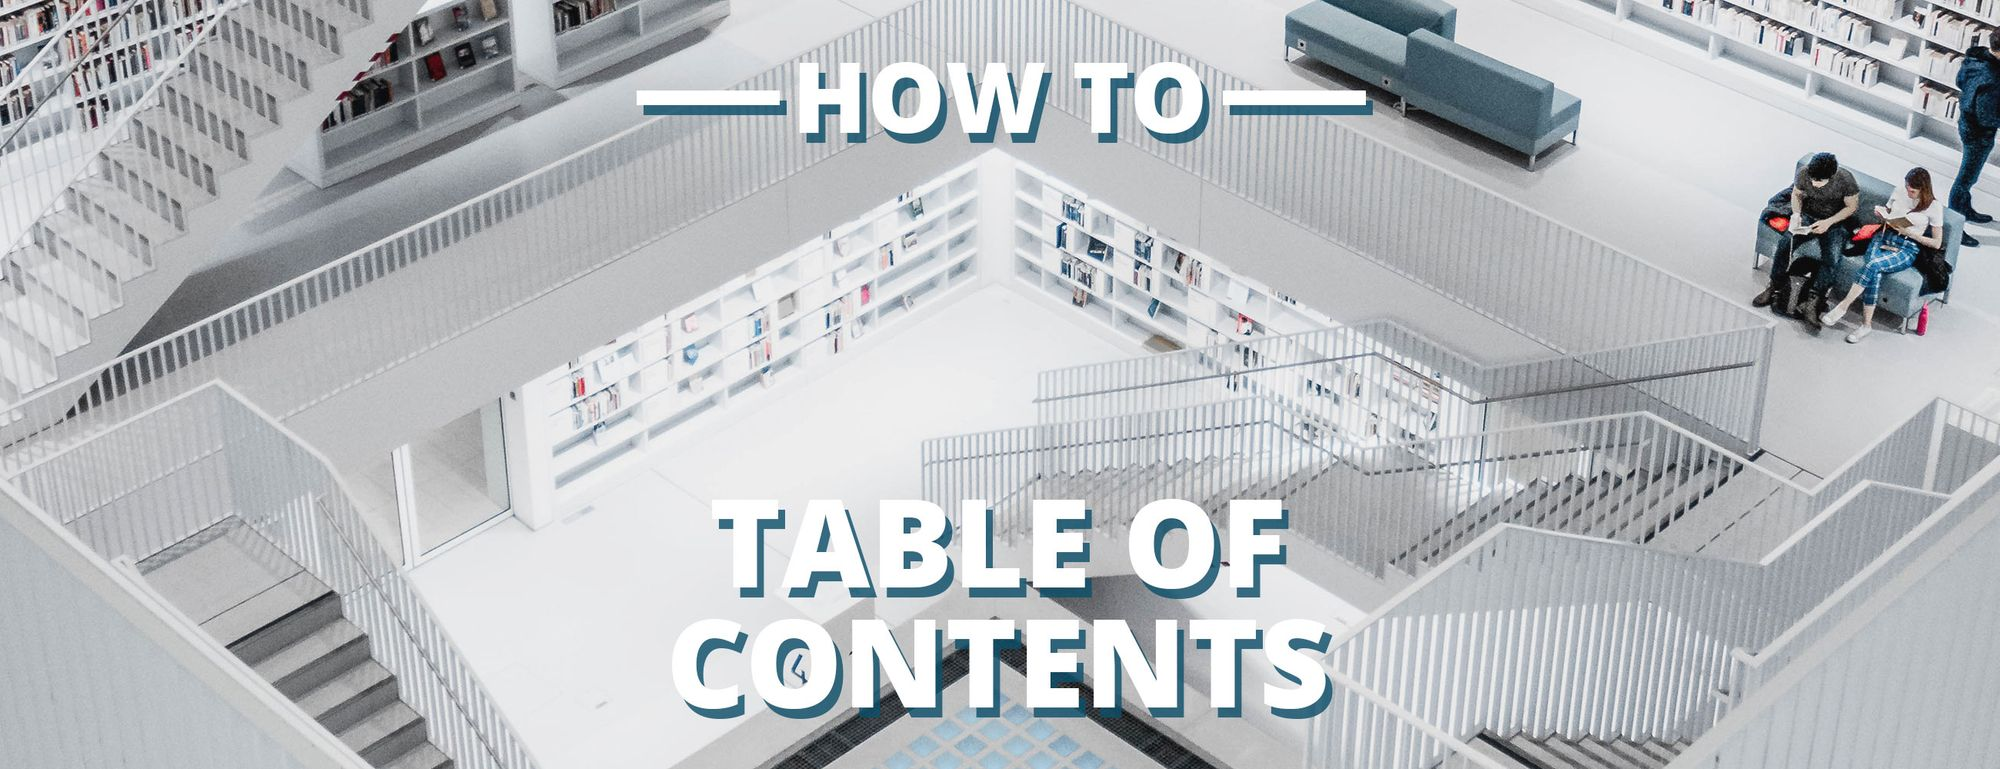 How to Add a Table of Contents to Your Blog Post or Article